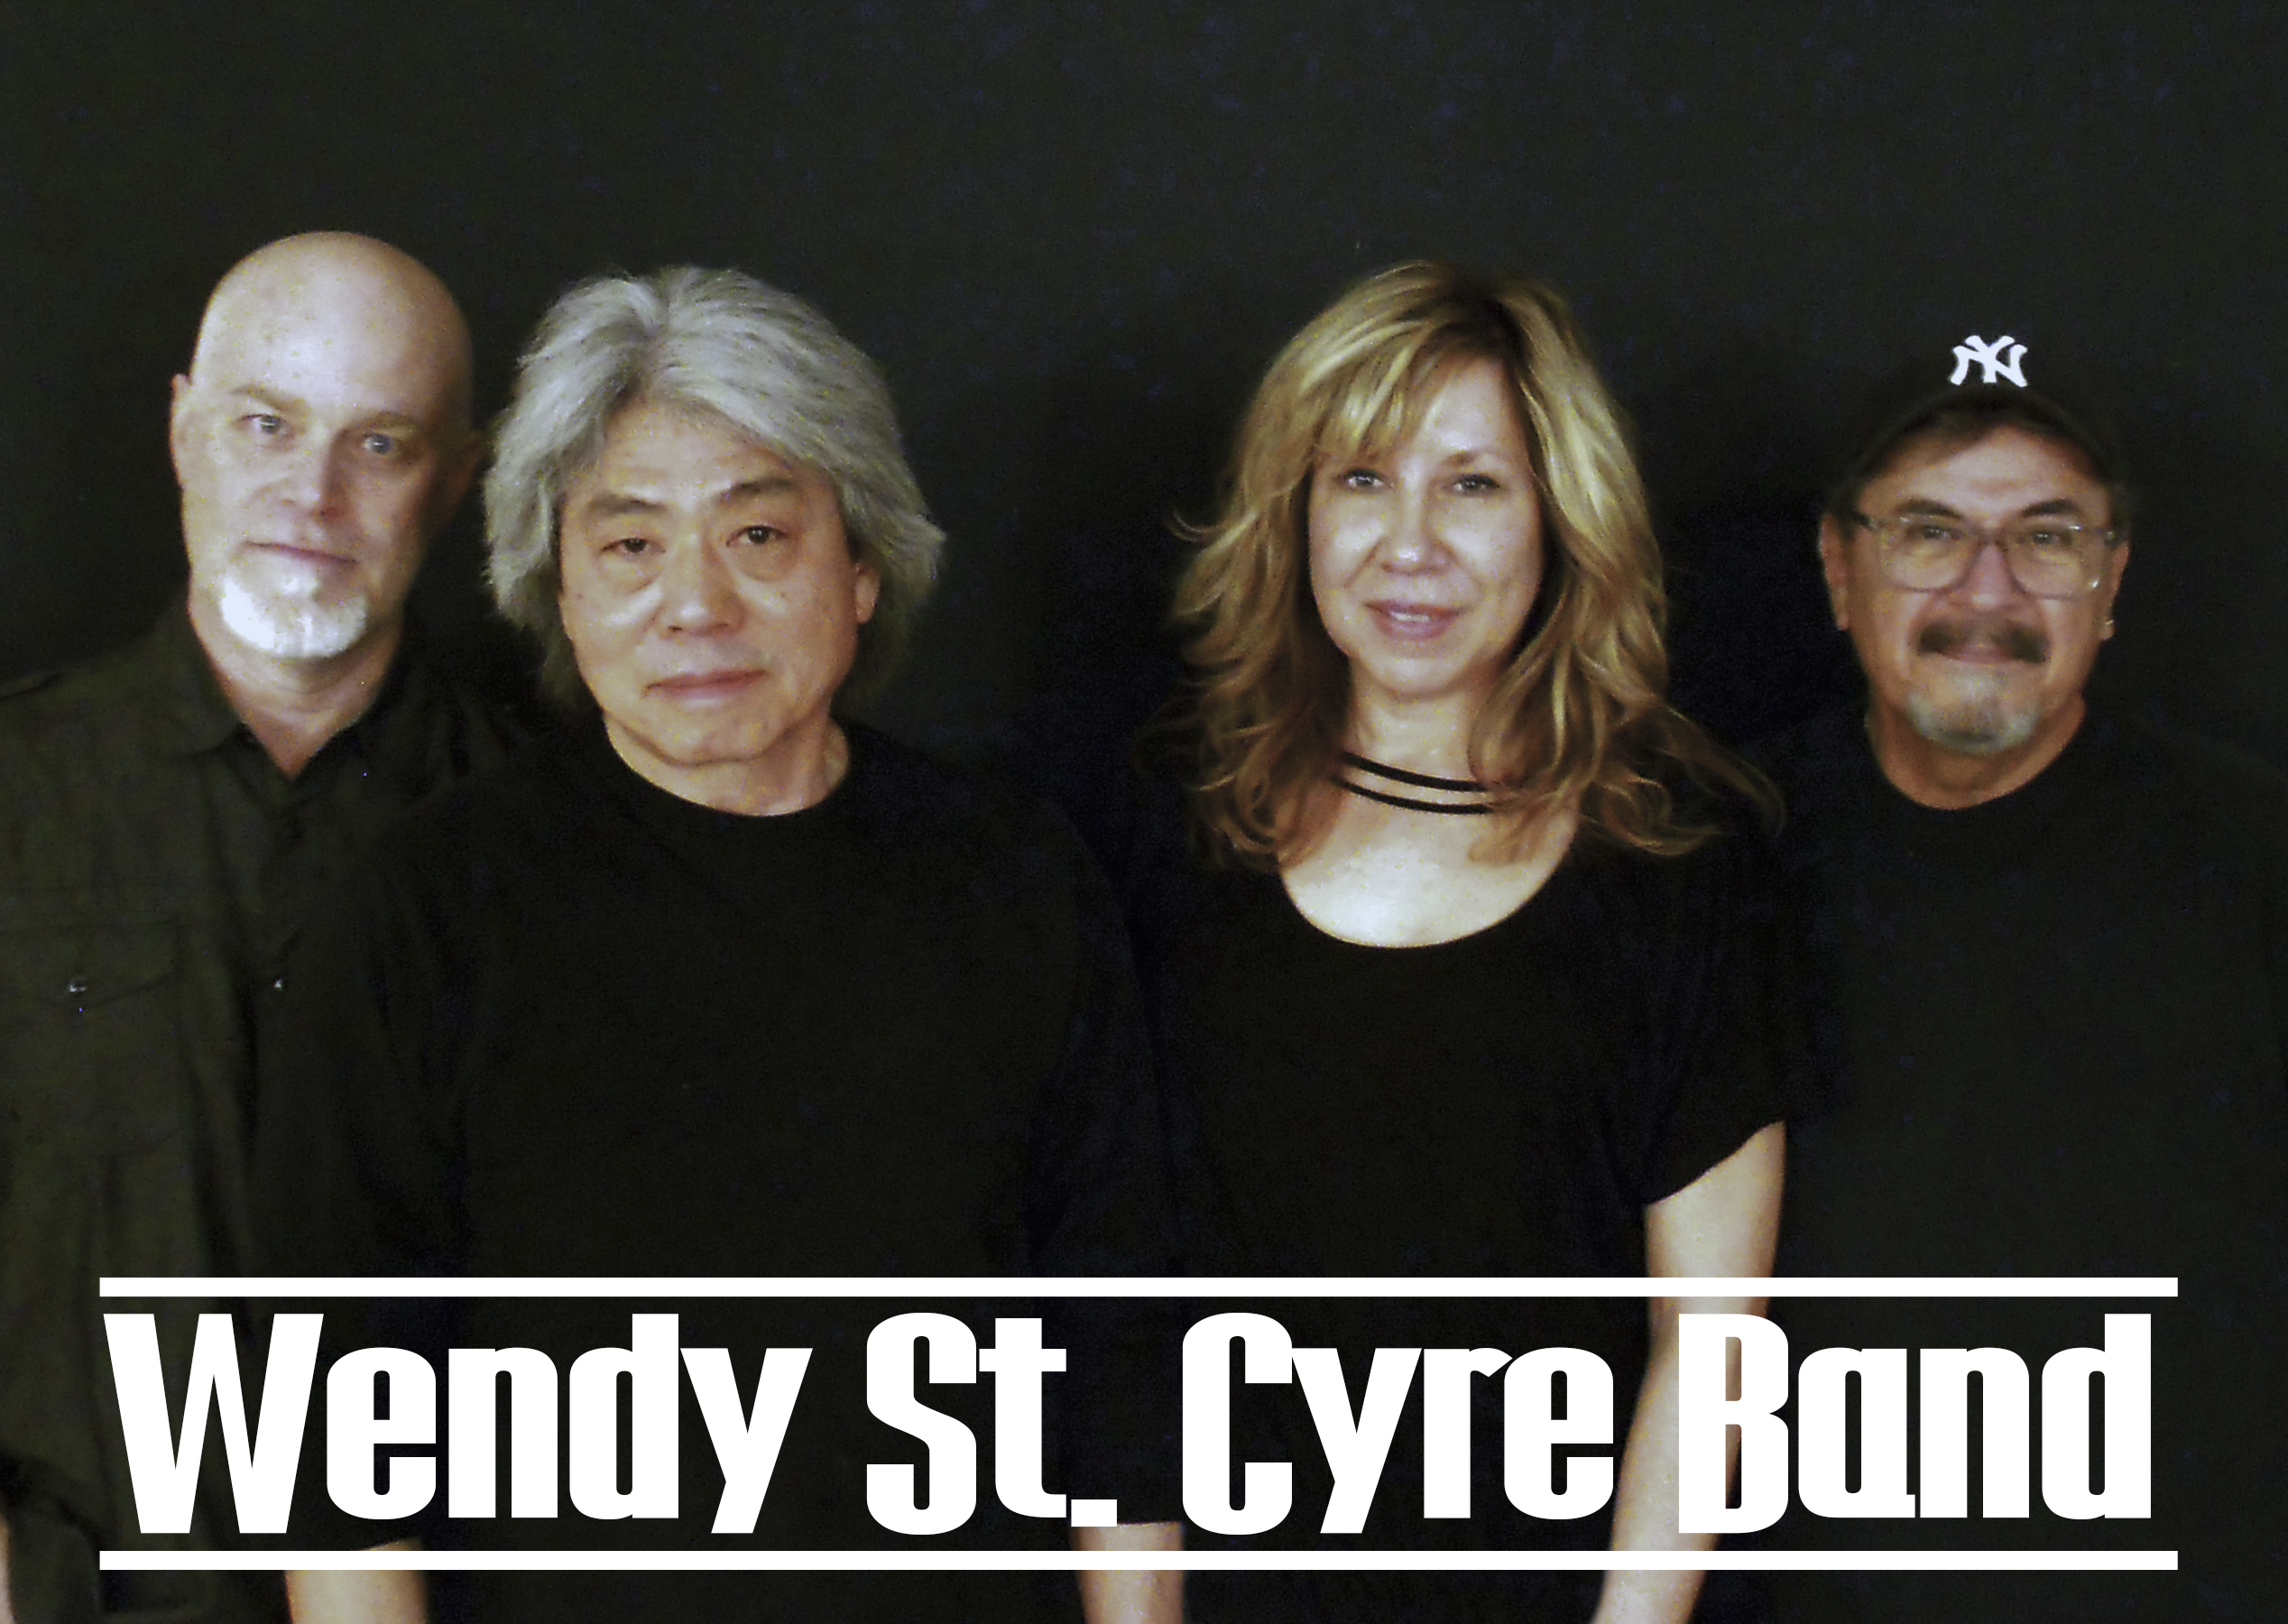 Wendy St Cyre Band